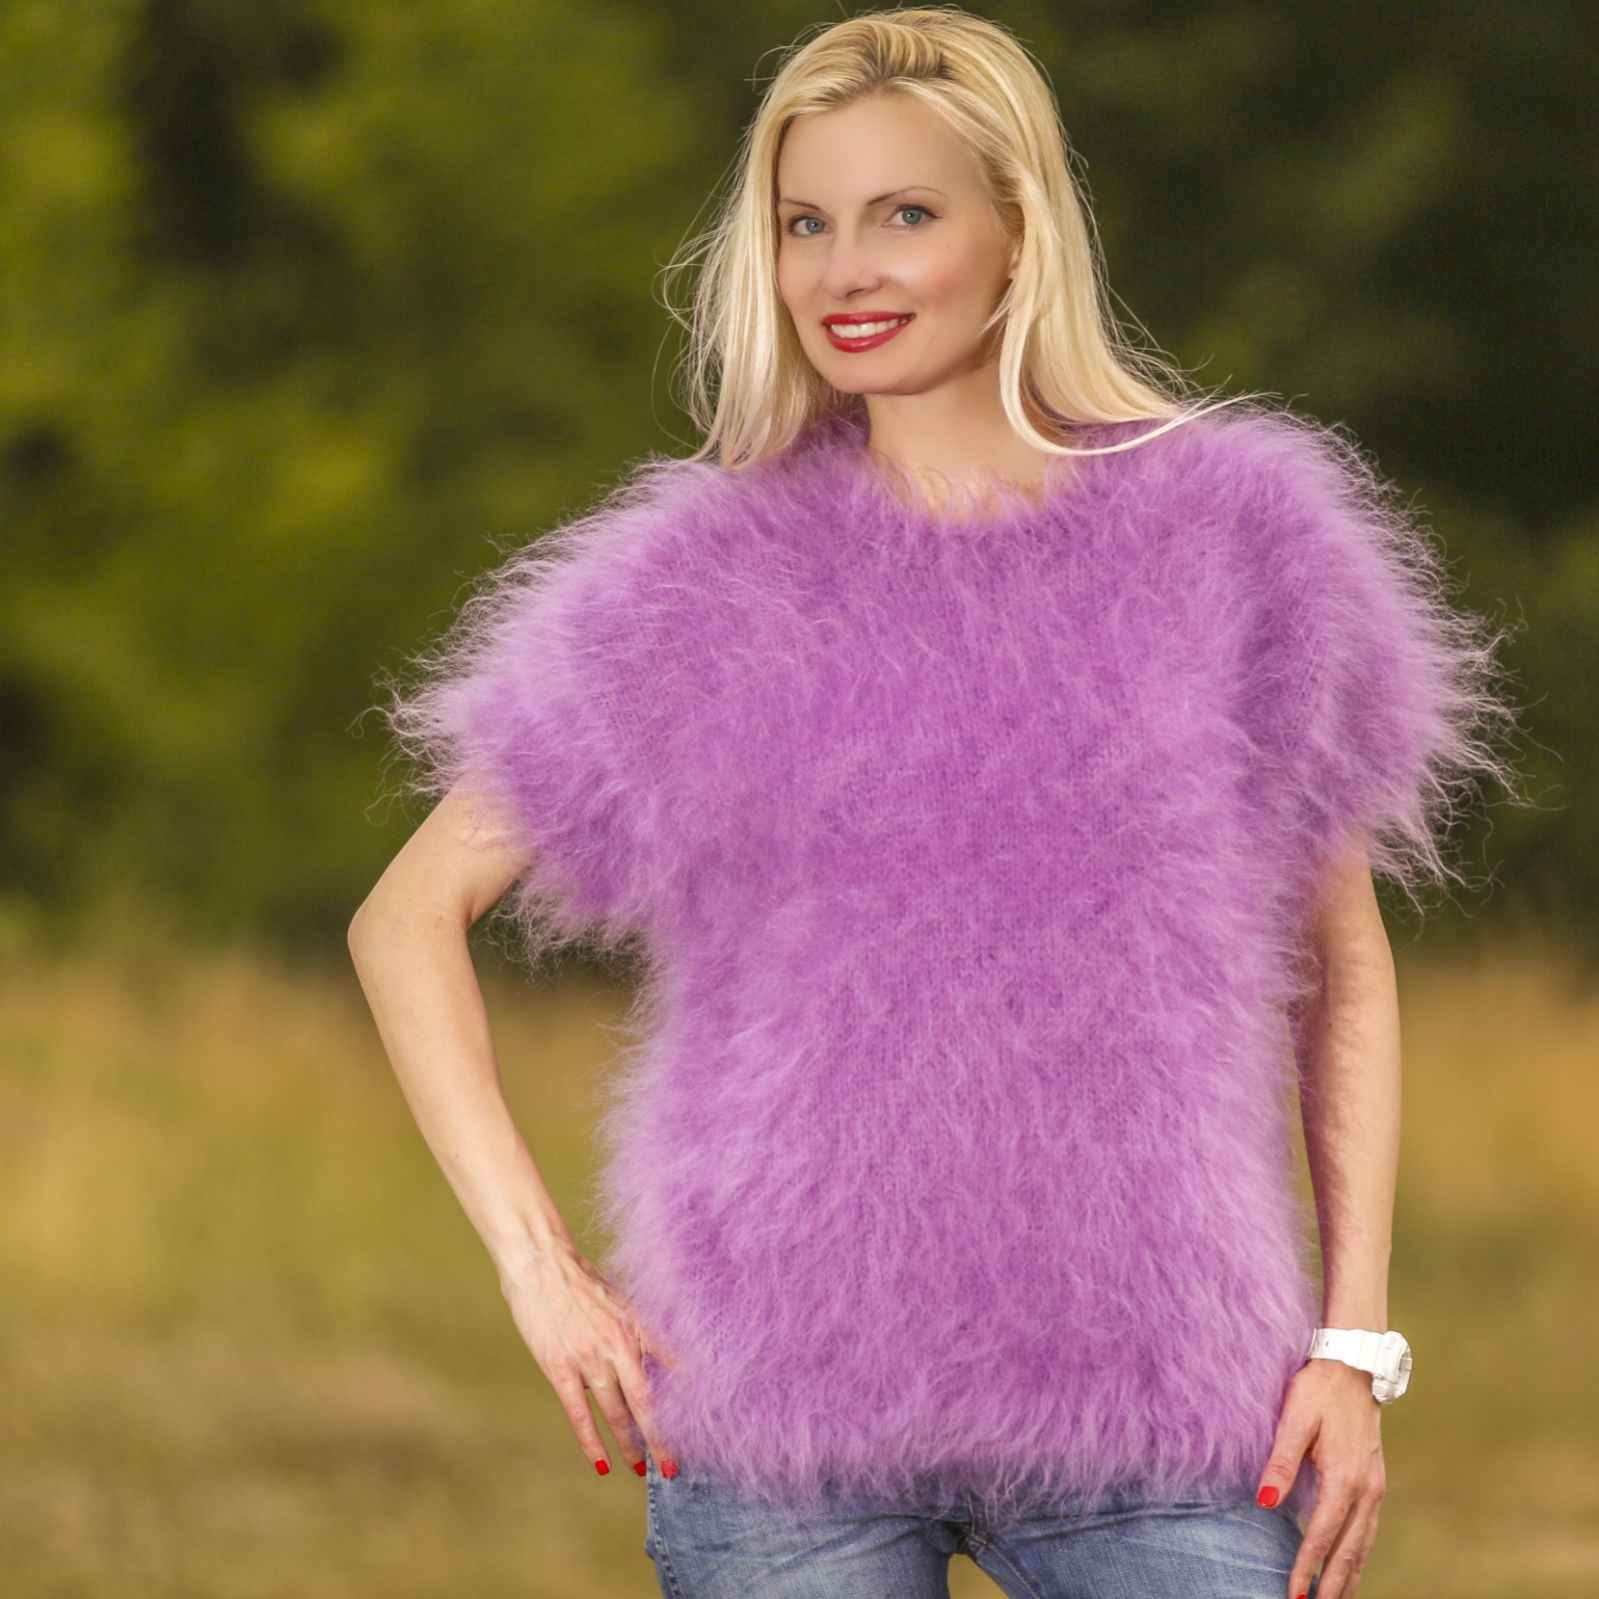 Silky Mohair Sweater for Men and Women